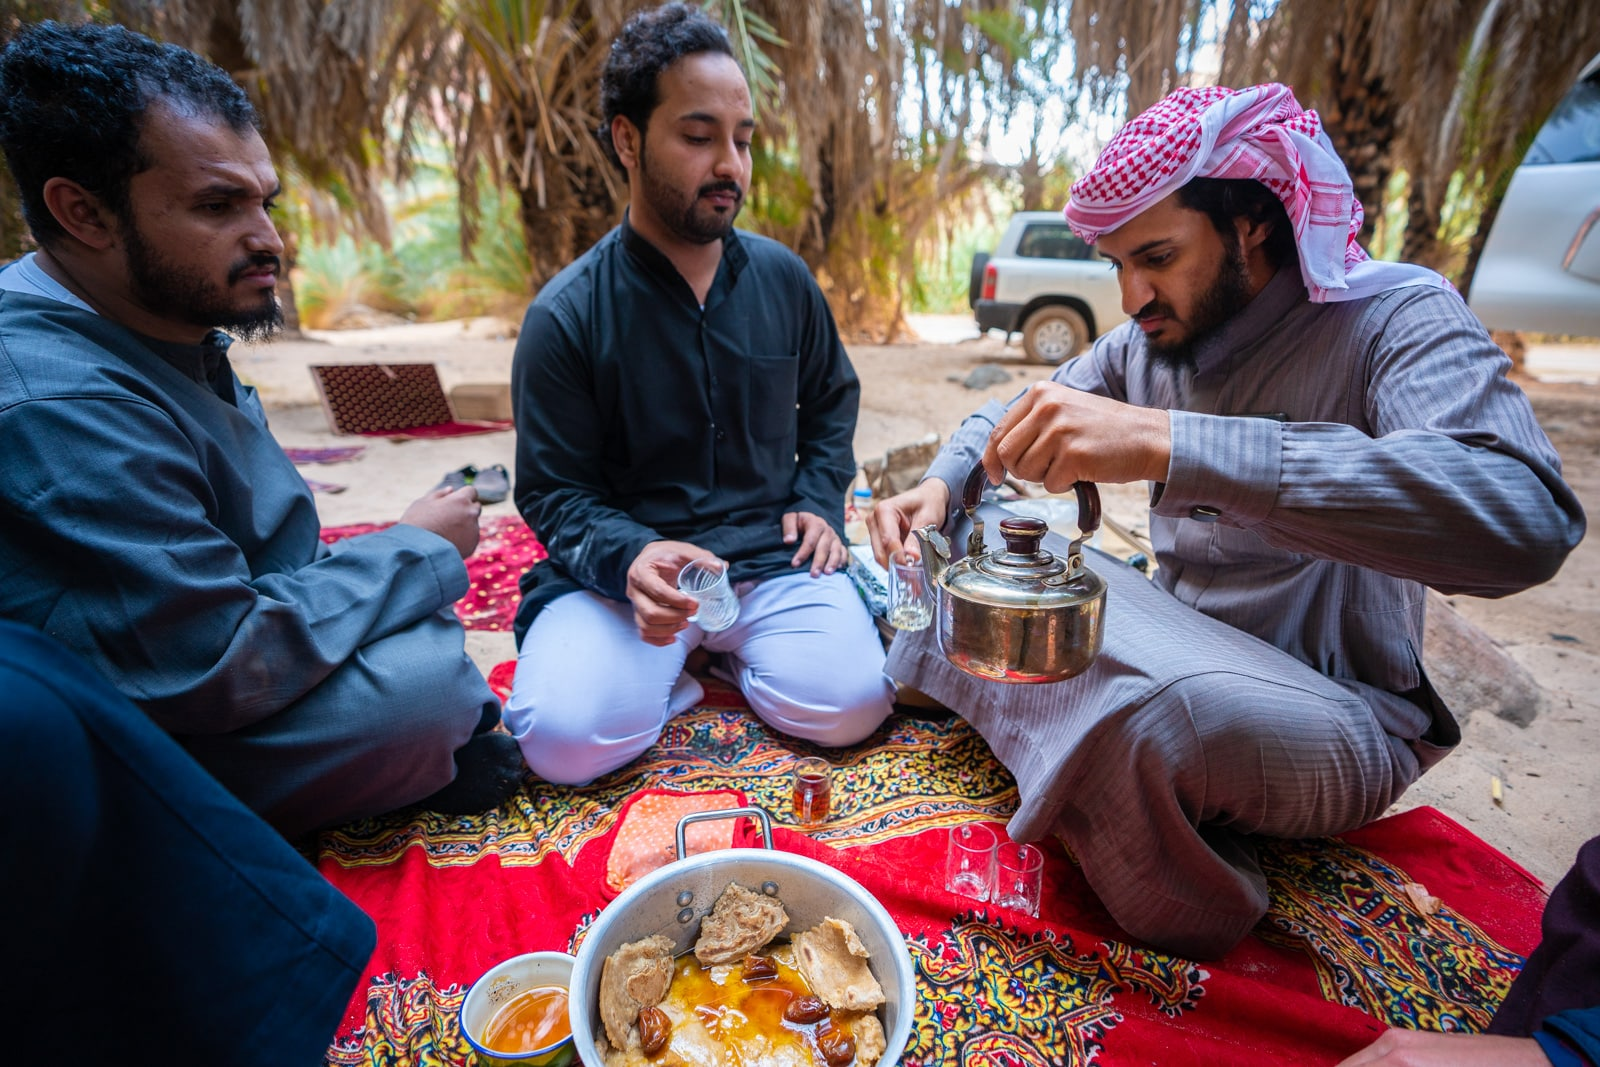 Saudi men eating on the ground while camping.